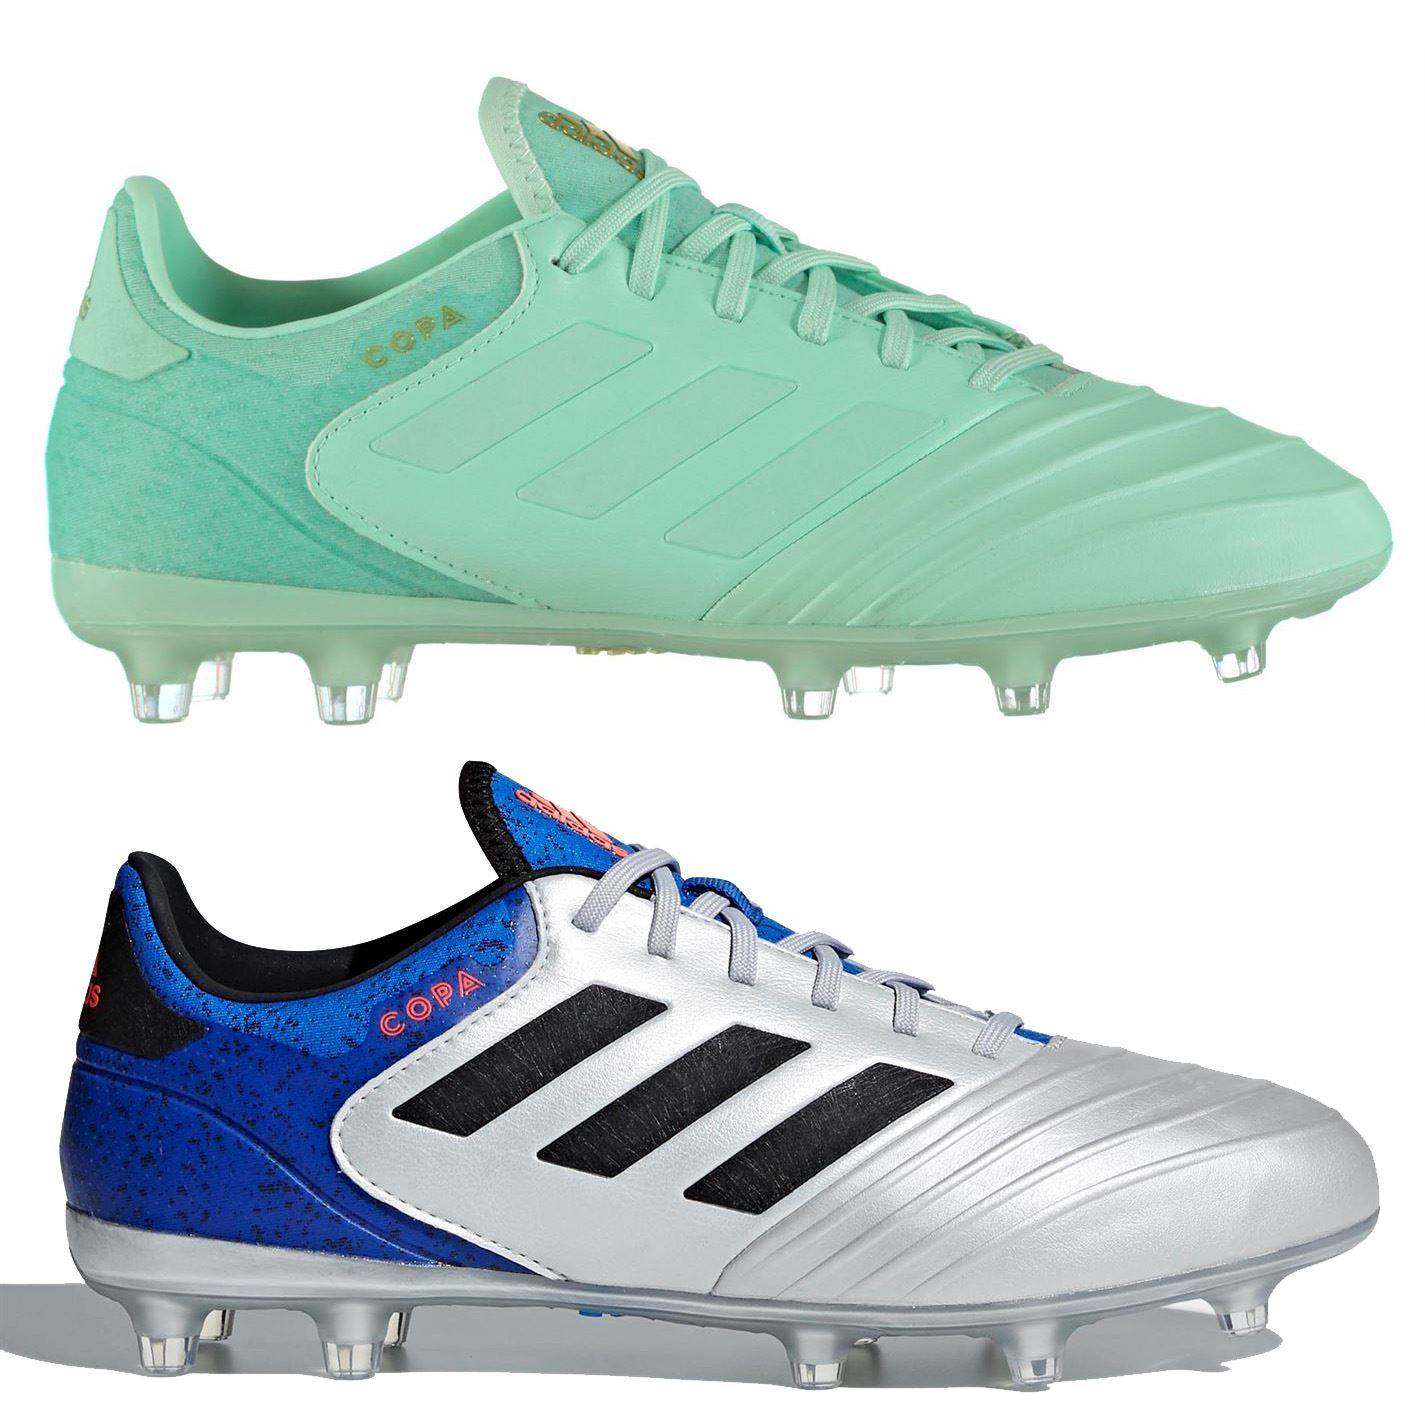 c4b049a85 adidas Copa 18.2 FG Firm Ground Football Boots Mens Soccer Shoes Cleats